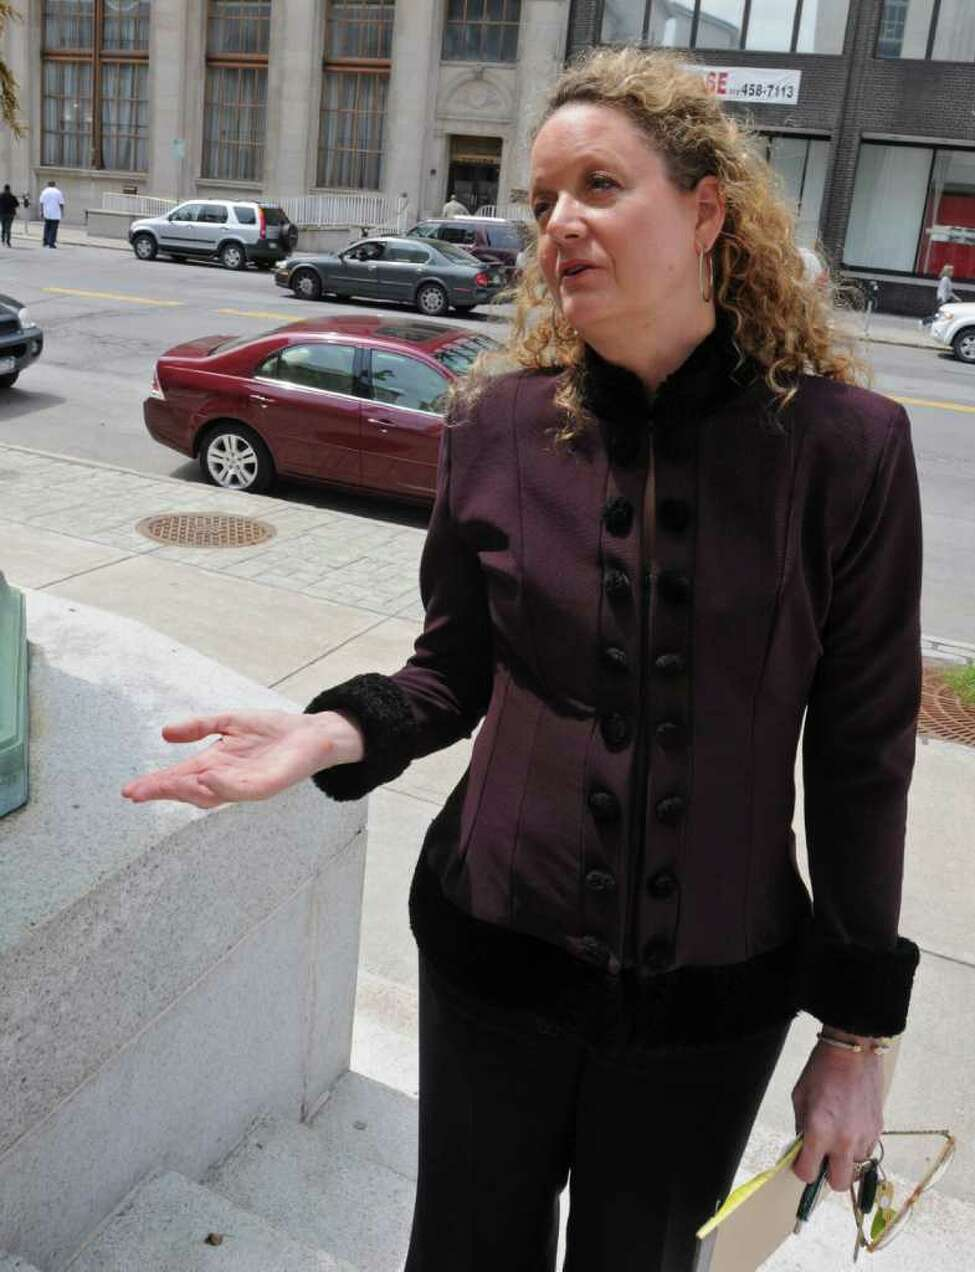 Barbara Bouchey stands outside the Federal Courthouse on Broadway in Albany, N.Y. on Tuesday May 3, 2011. (Lori Van Buren / Times Union)